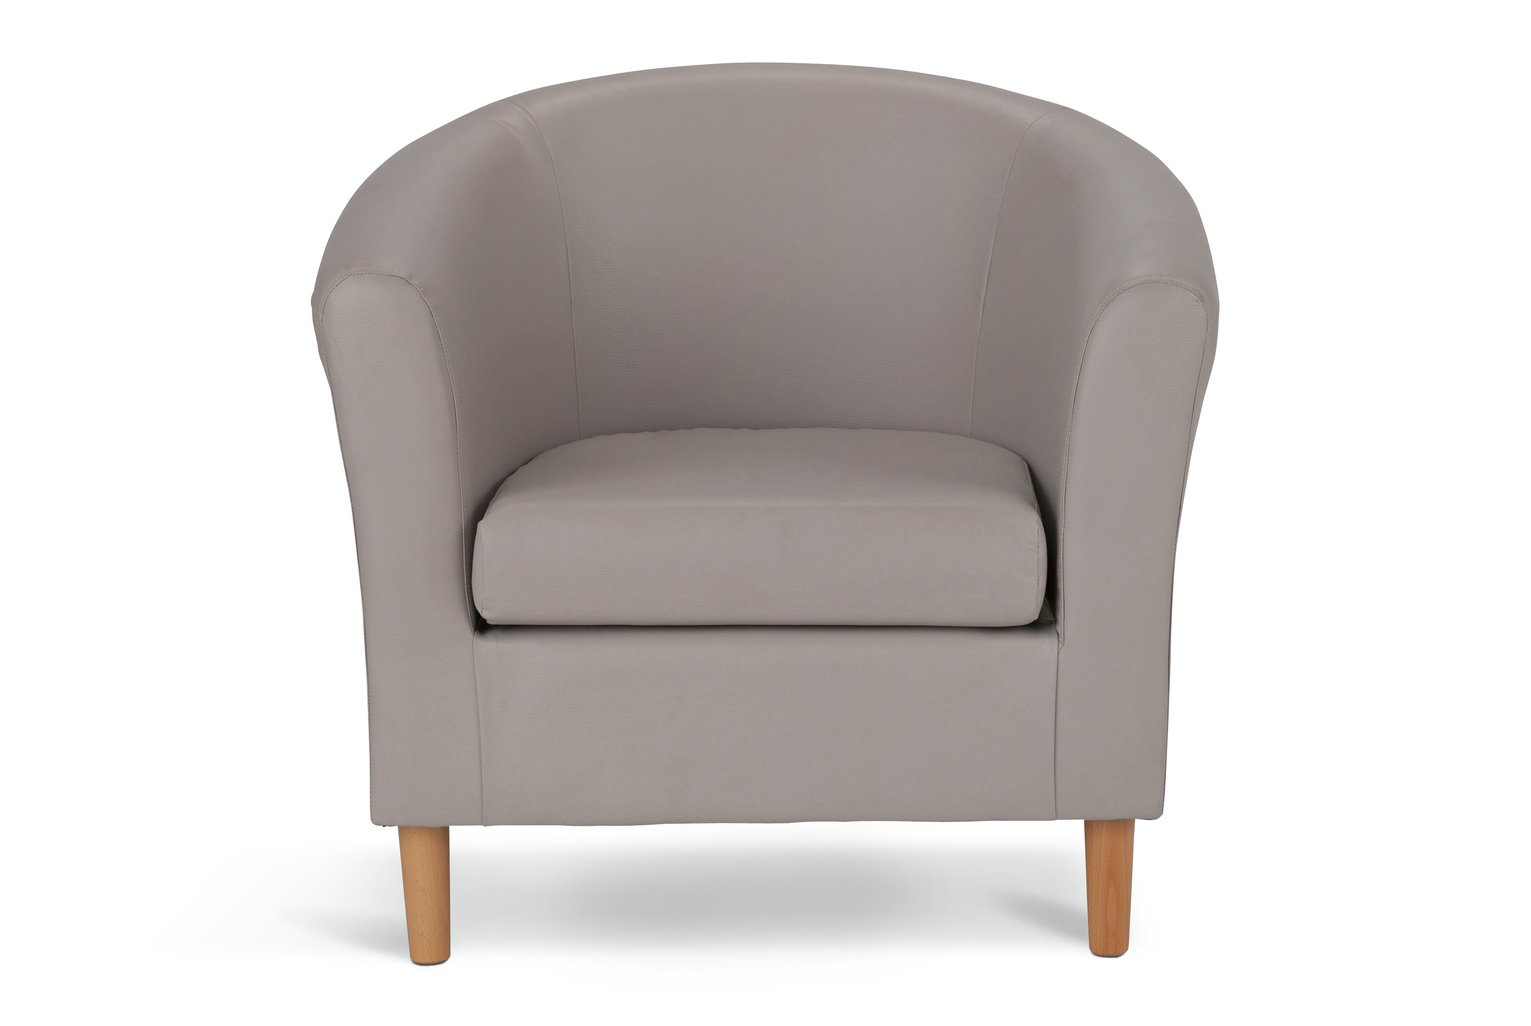 Argos Home Faux Leather Tub Chair - Mocha